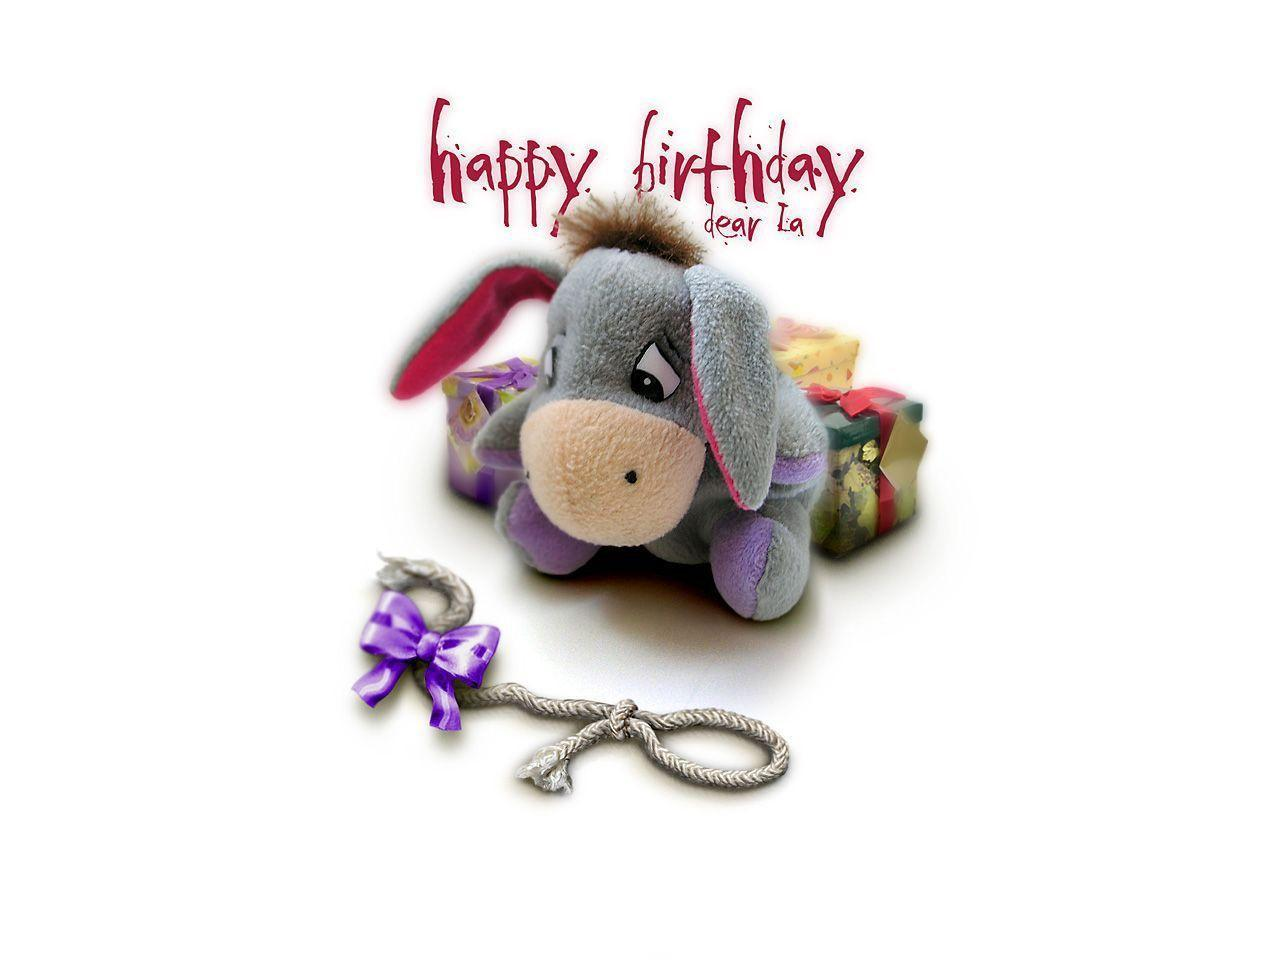 Funny birthday wallpapers wallpaper cave - Zedge happy birthday wallpapers ...